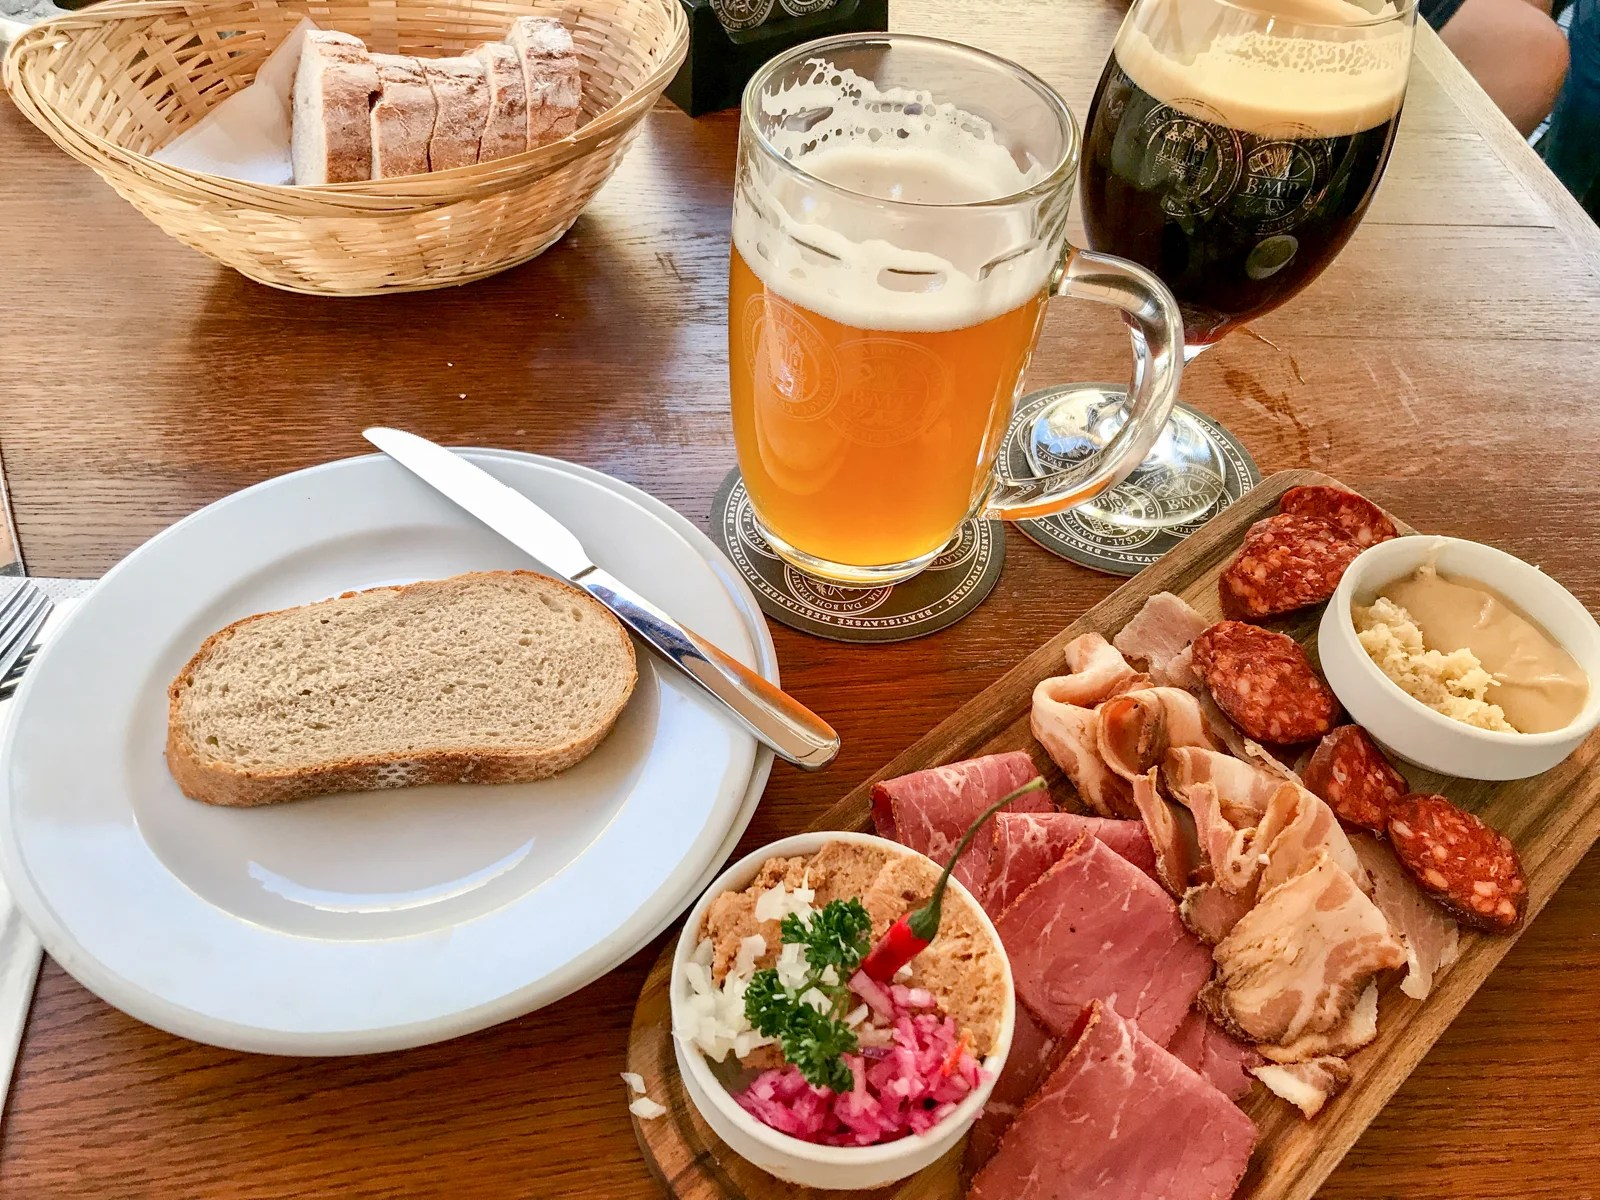 Plates of homemade sausage, juniper bacon and other meats are among the food options at Bratislava Meštiansky Pivovar.Photo by Gene Sloan / The Points Guy